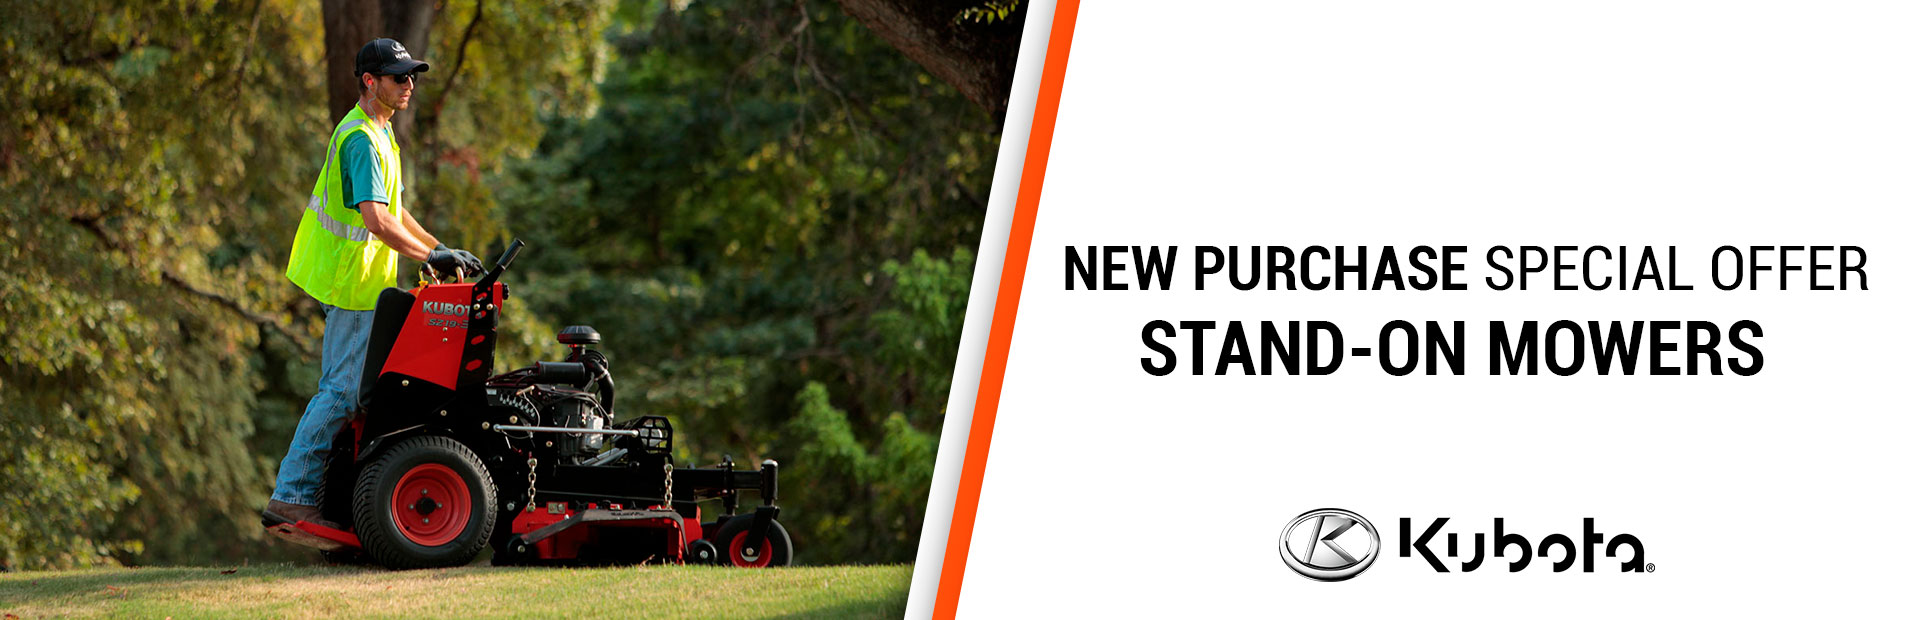 Kubota: New Purchase Special Offer - Stand-On Mowers